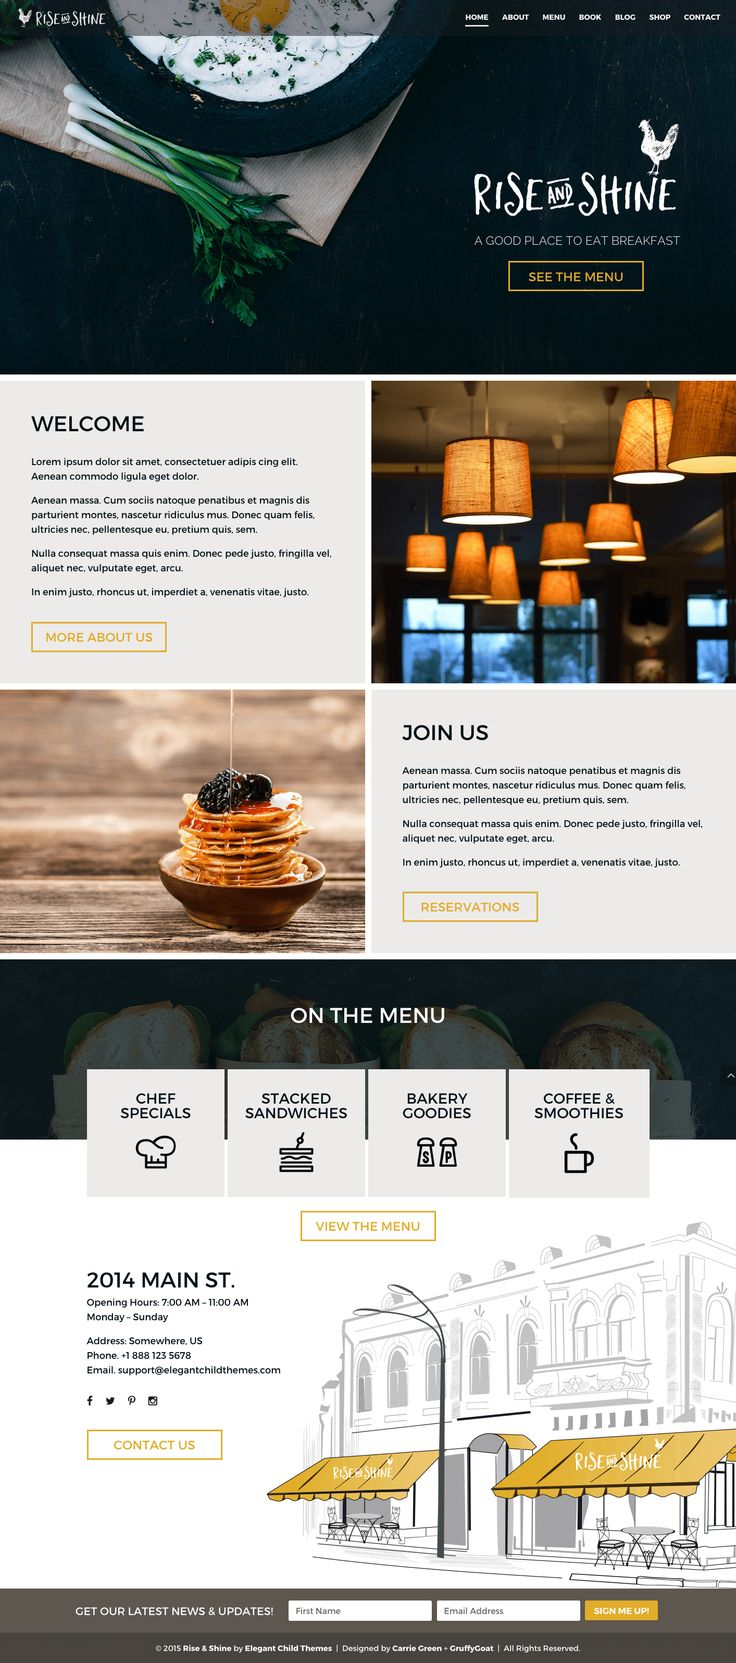 Beautiful WordPress Themes for Divi by Elegant Themes. From quality code to elegant design, our themes are built with the user's experience in mind.